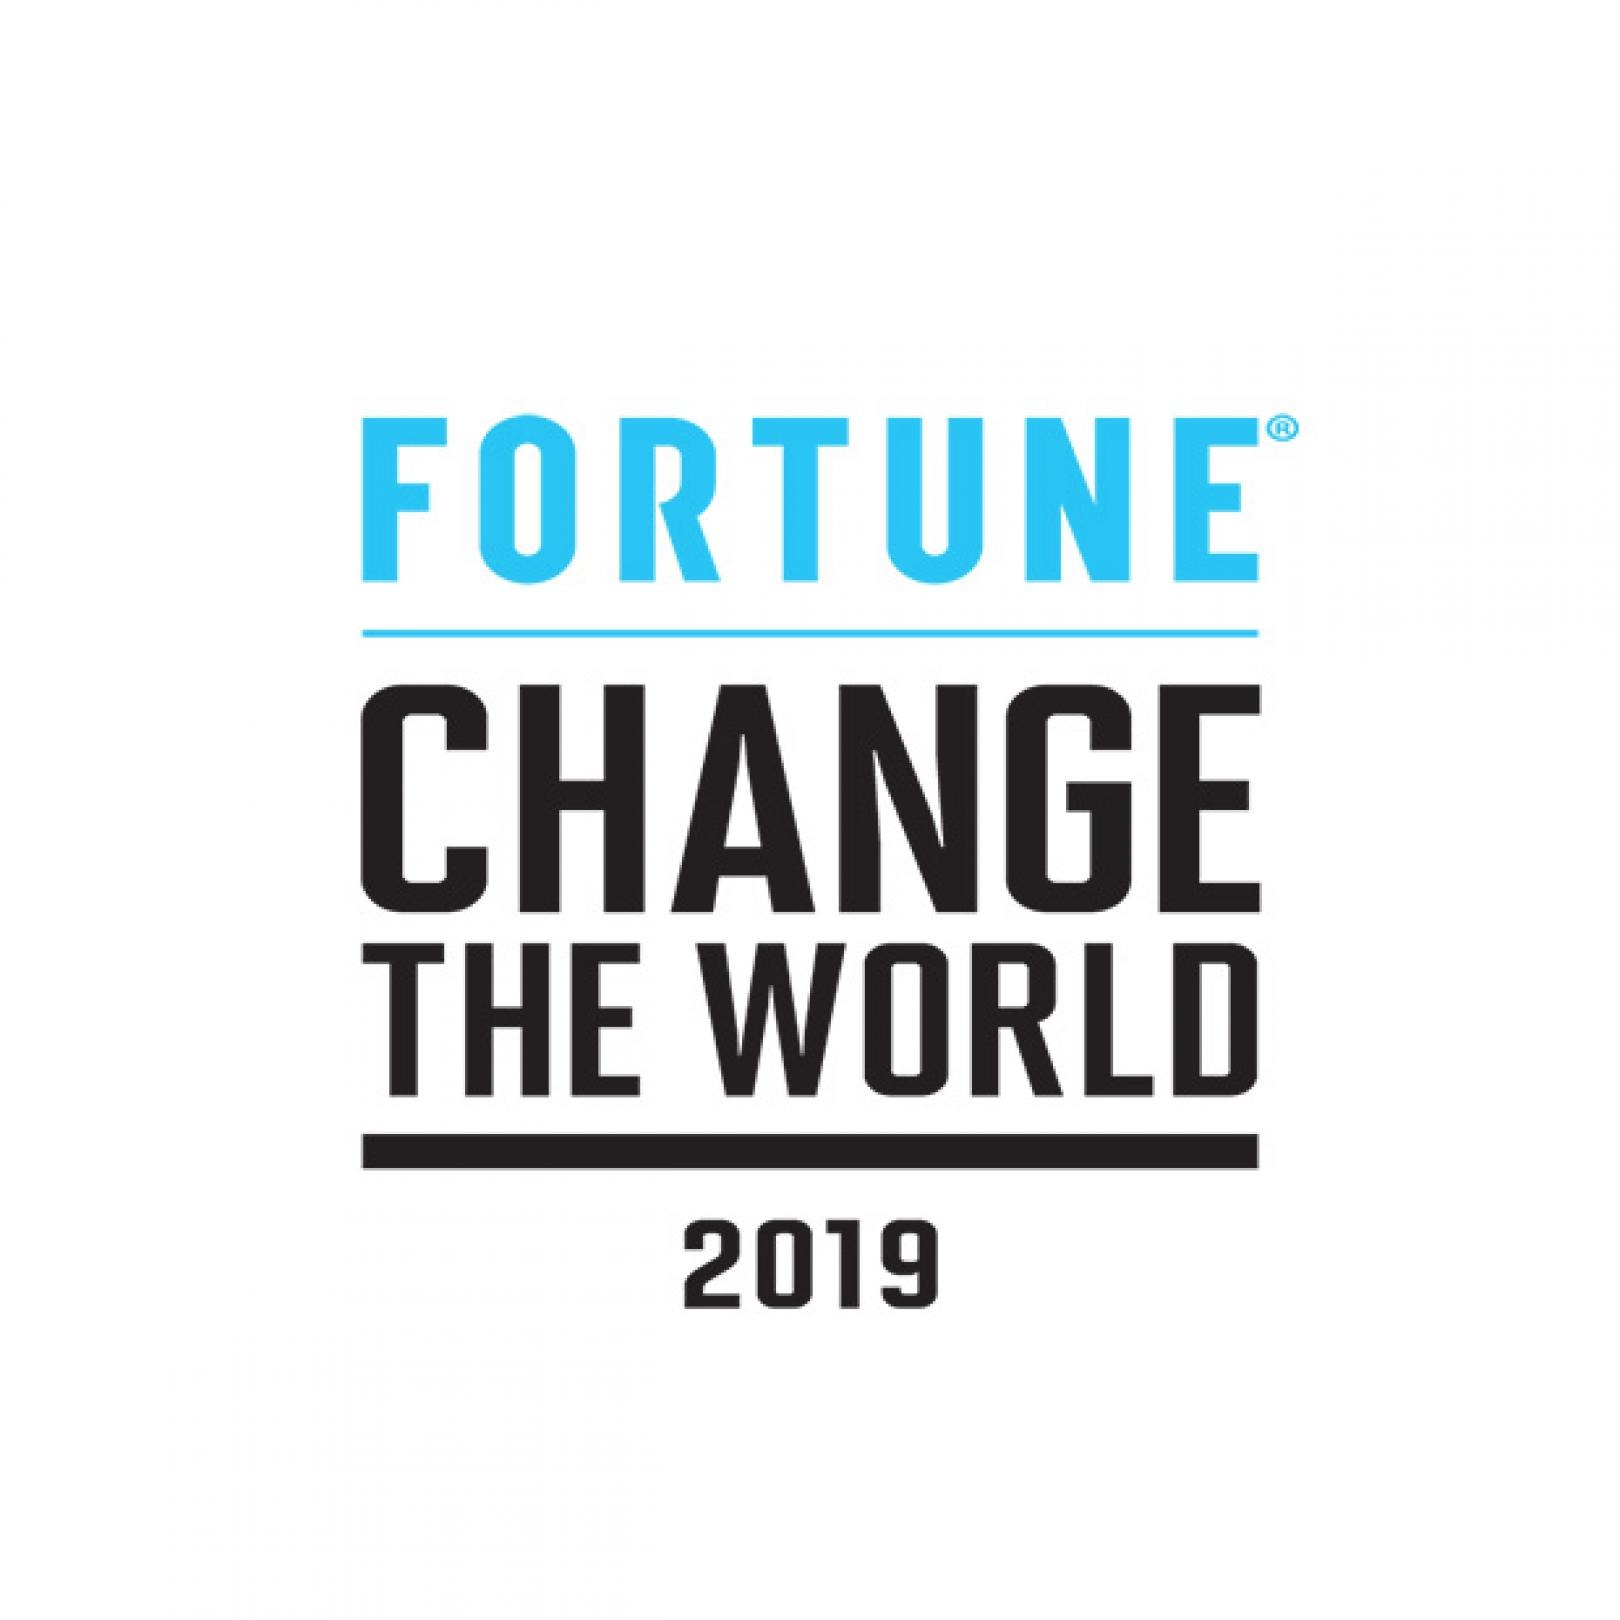 Fortune Change the World 2019